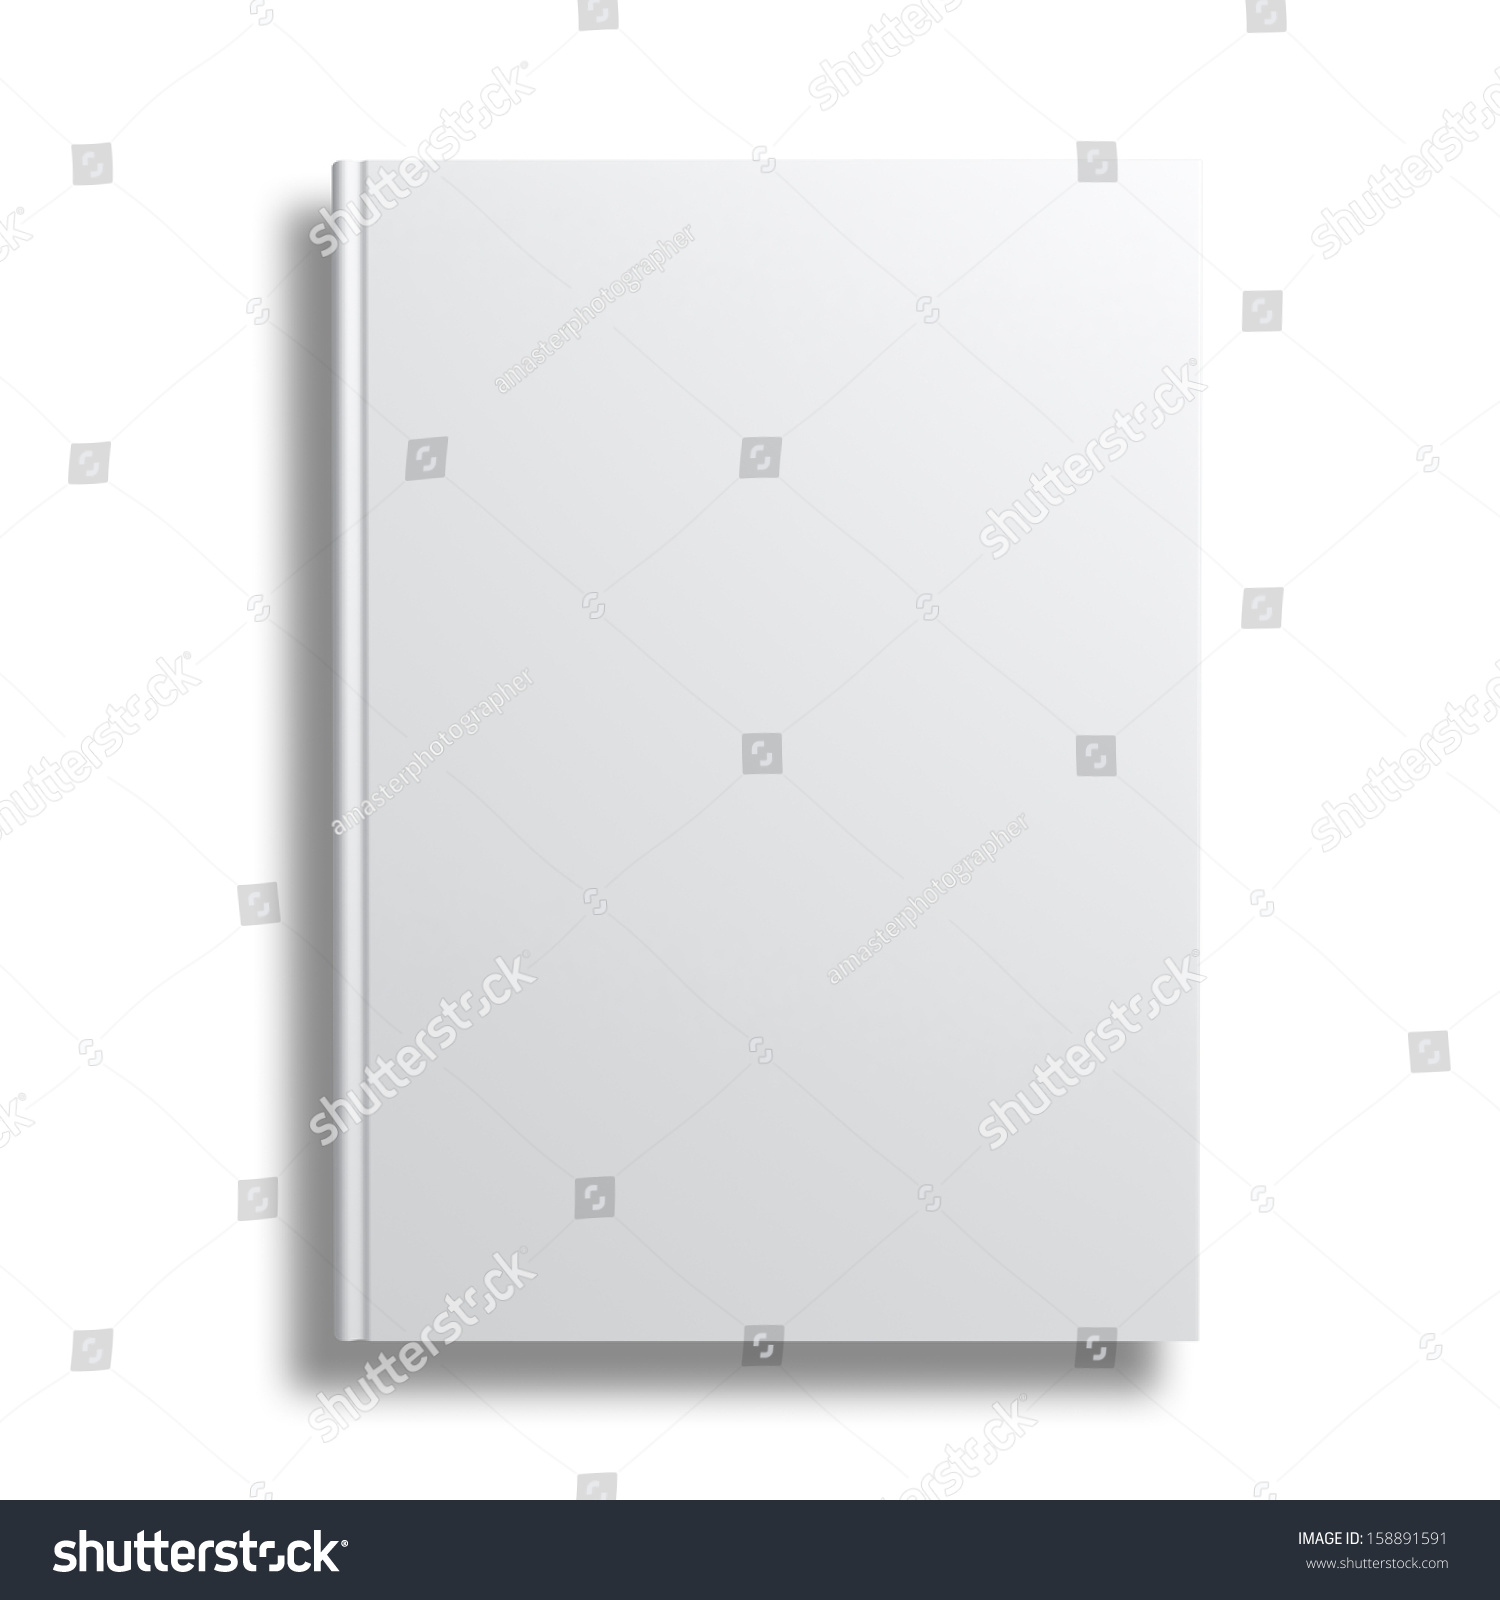 Book Cover White Xanax : Blank book cover isolated over white background with